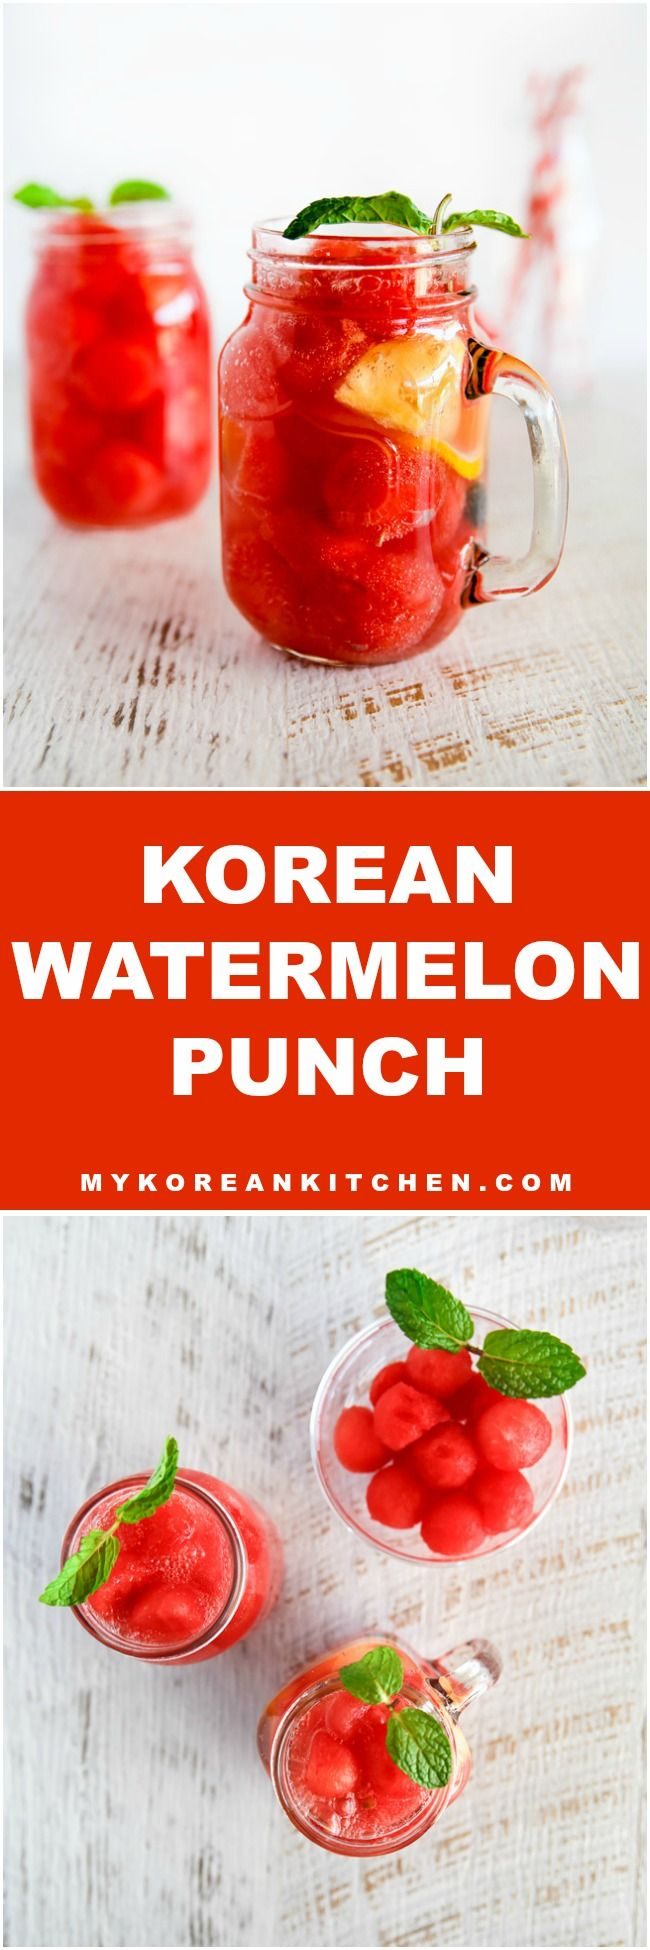 How to Make Korean Watermelon Punch | MyKoreanKitchen.com